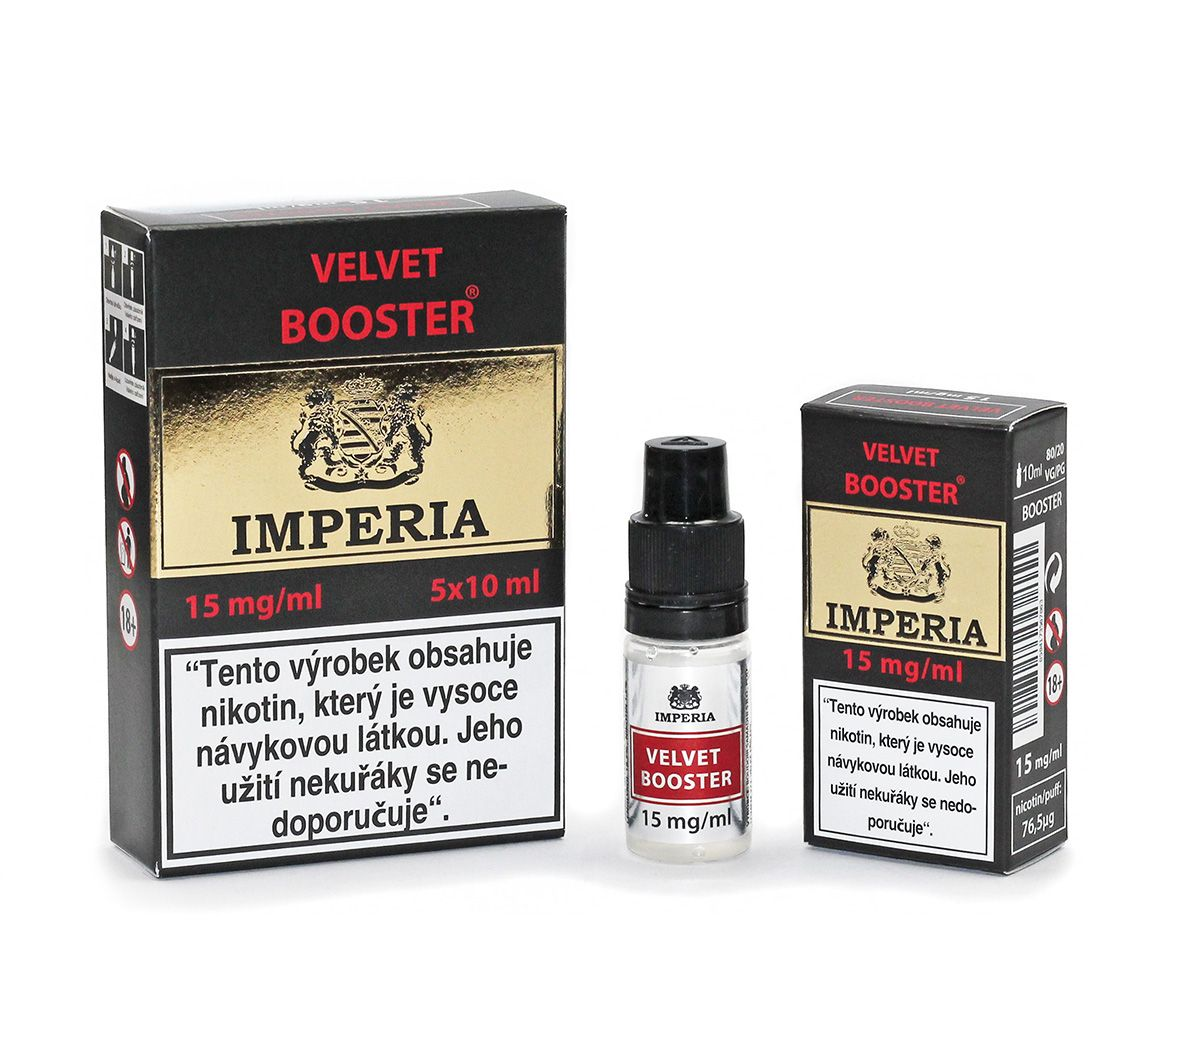 IMPERIA Velvet Booster 15mg - 5x10ml (20PG/80VG)